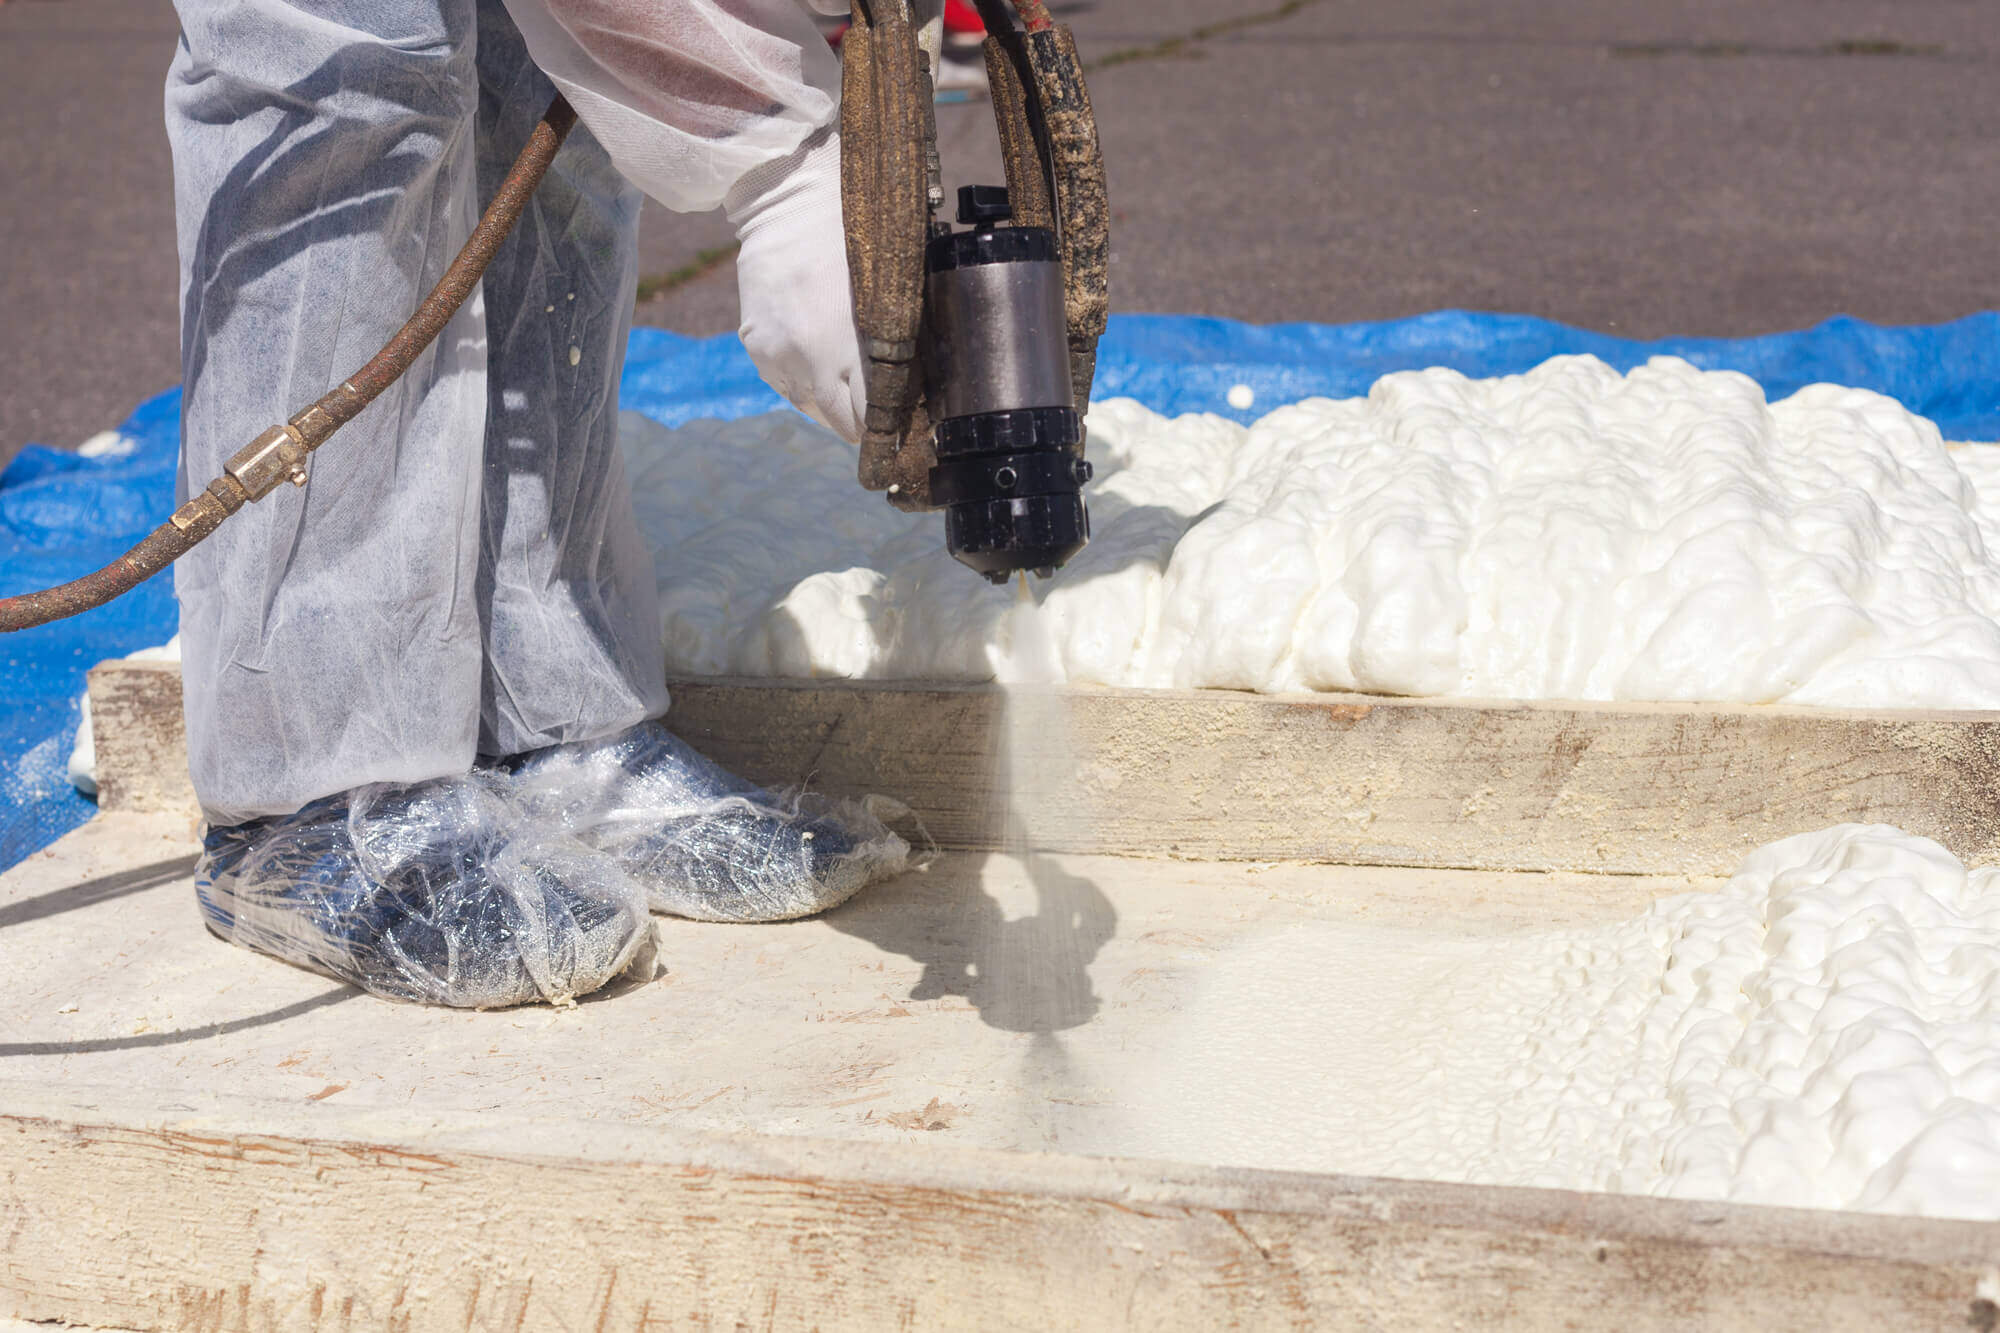 Technician spraying foam insulation using Plural Component Spray Gun.